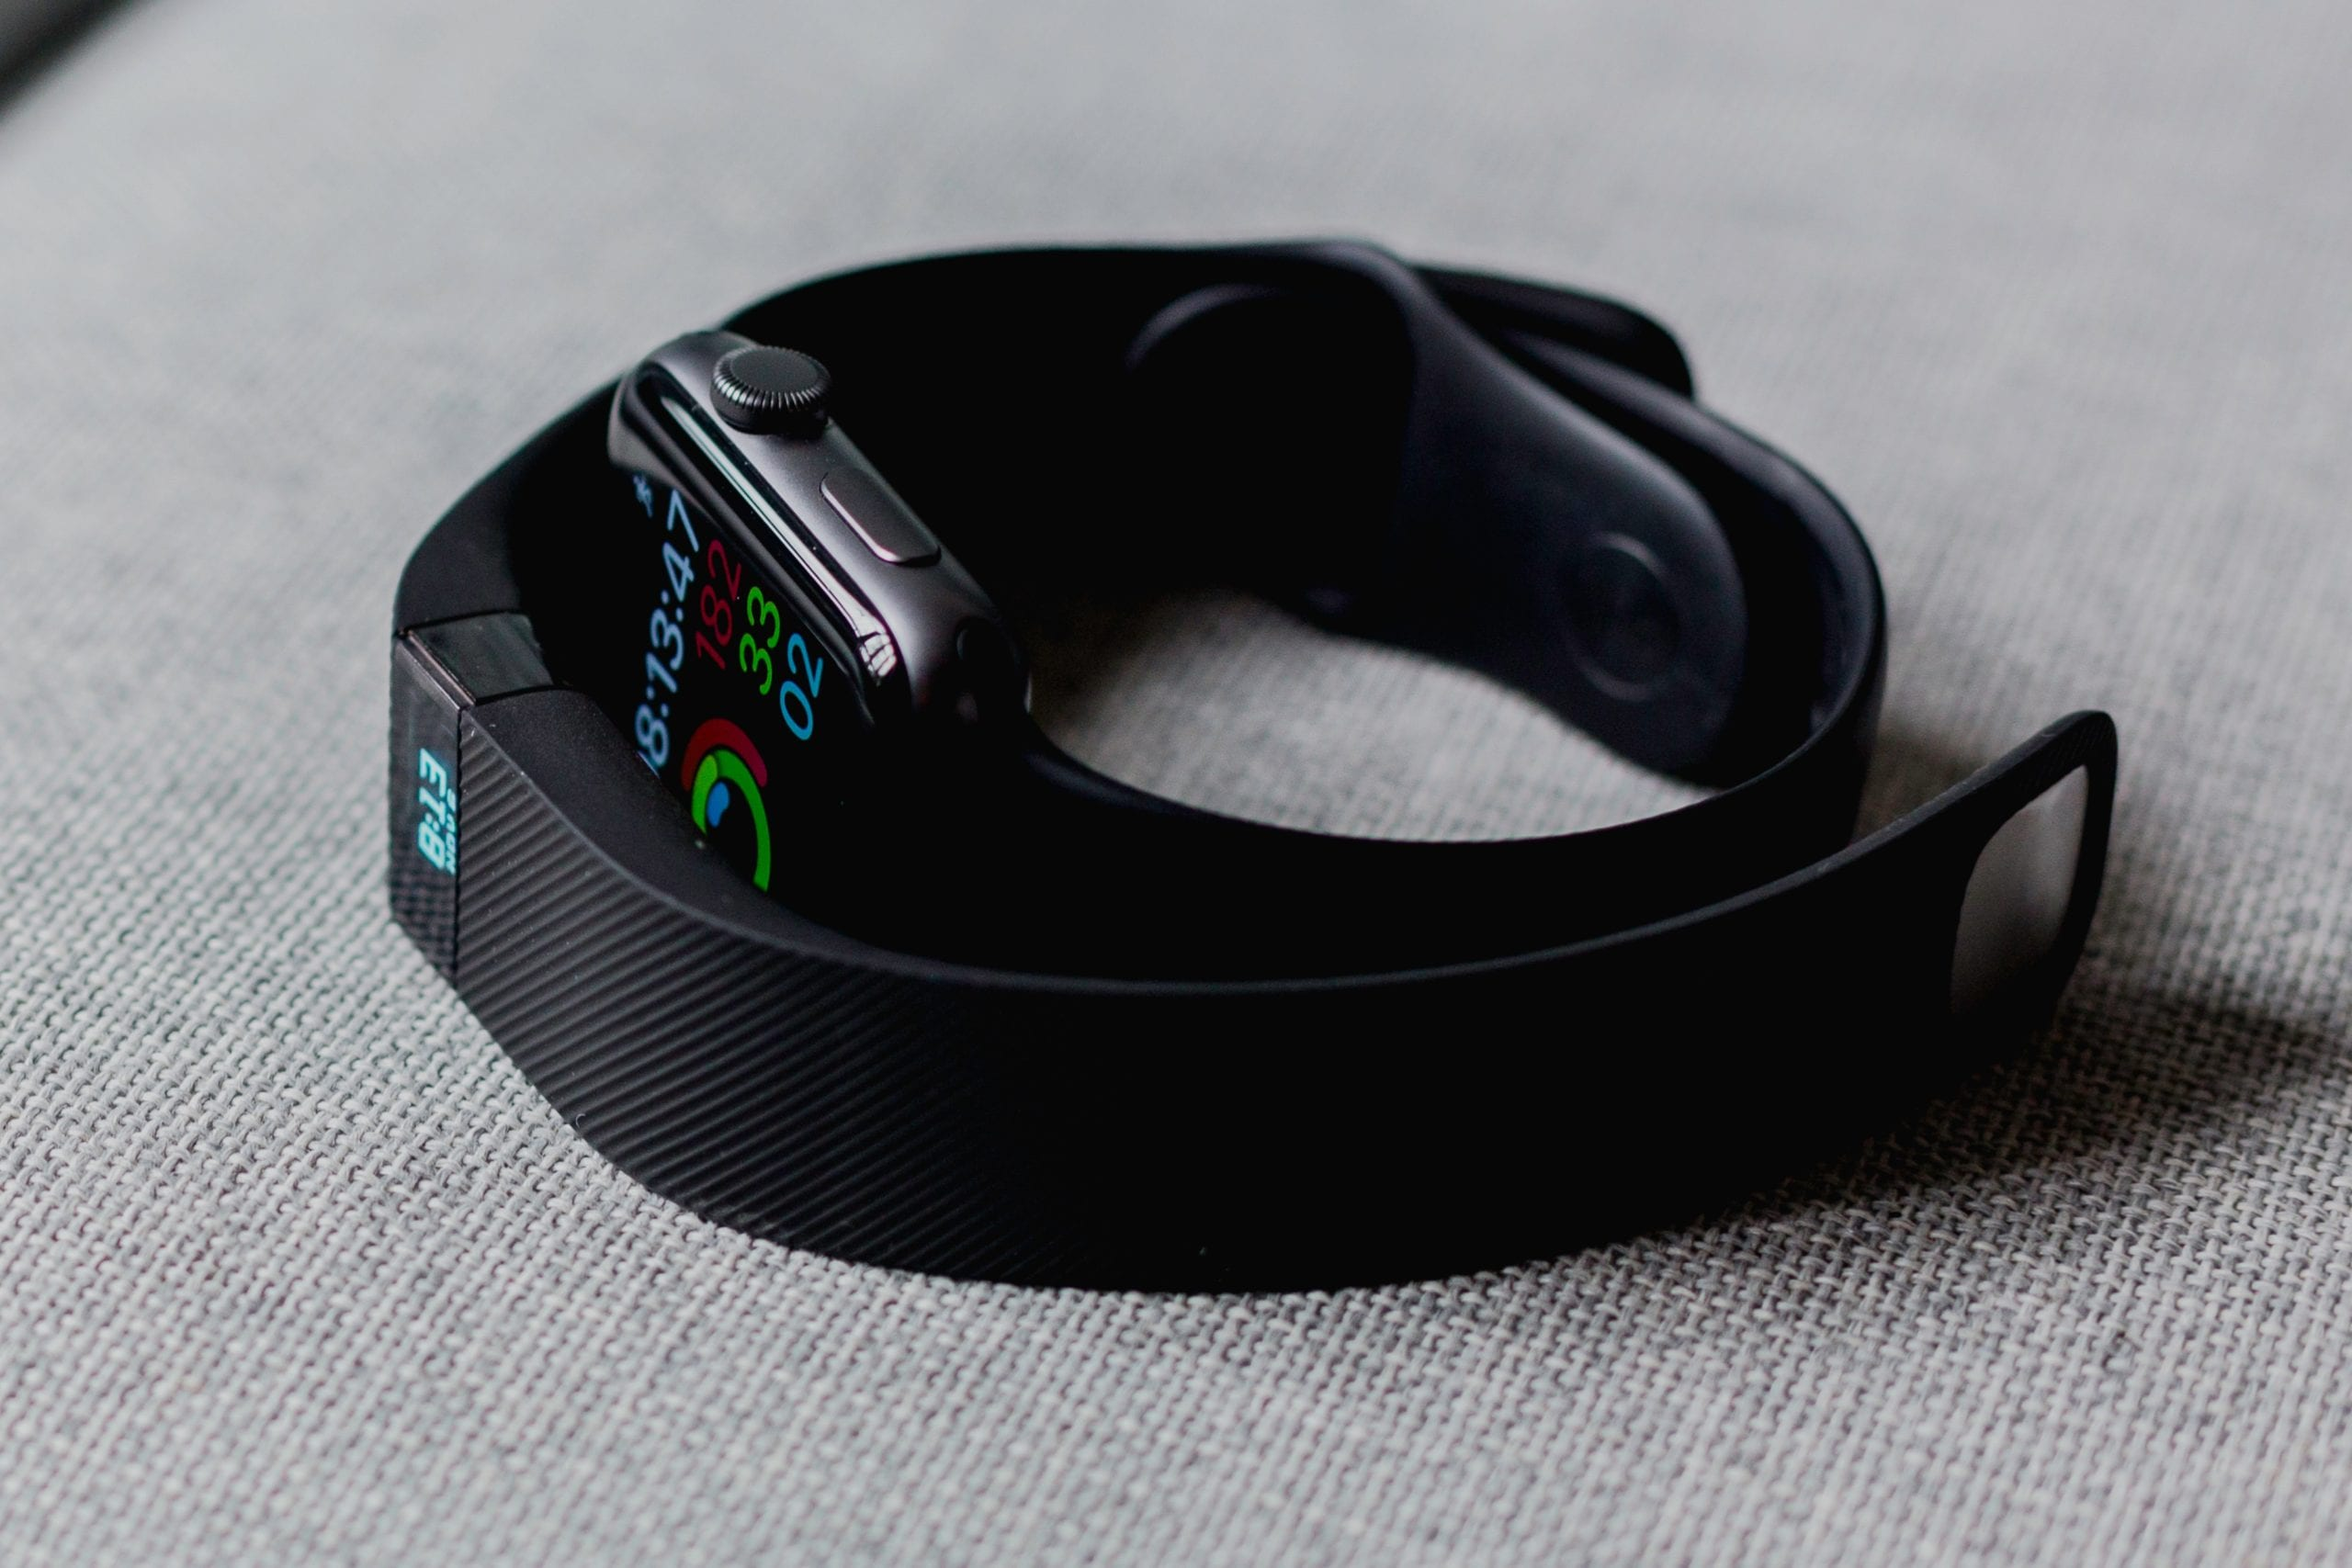 Alphabet's Buyout of Fitbit Sets It Up To Rule The Consumer Health Data Business